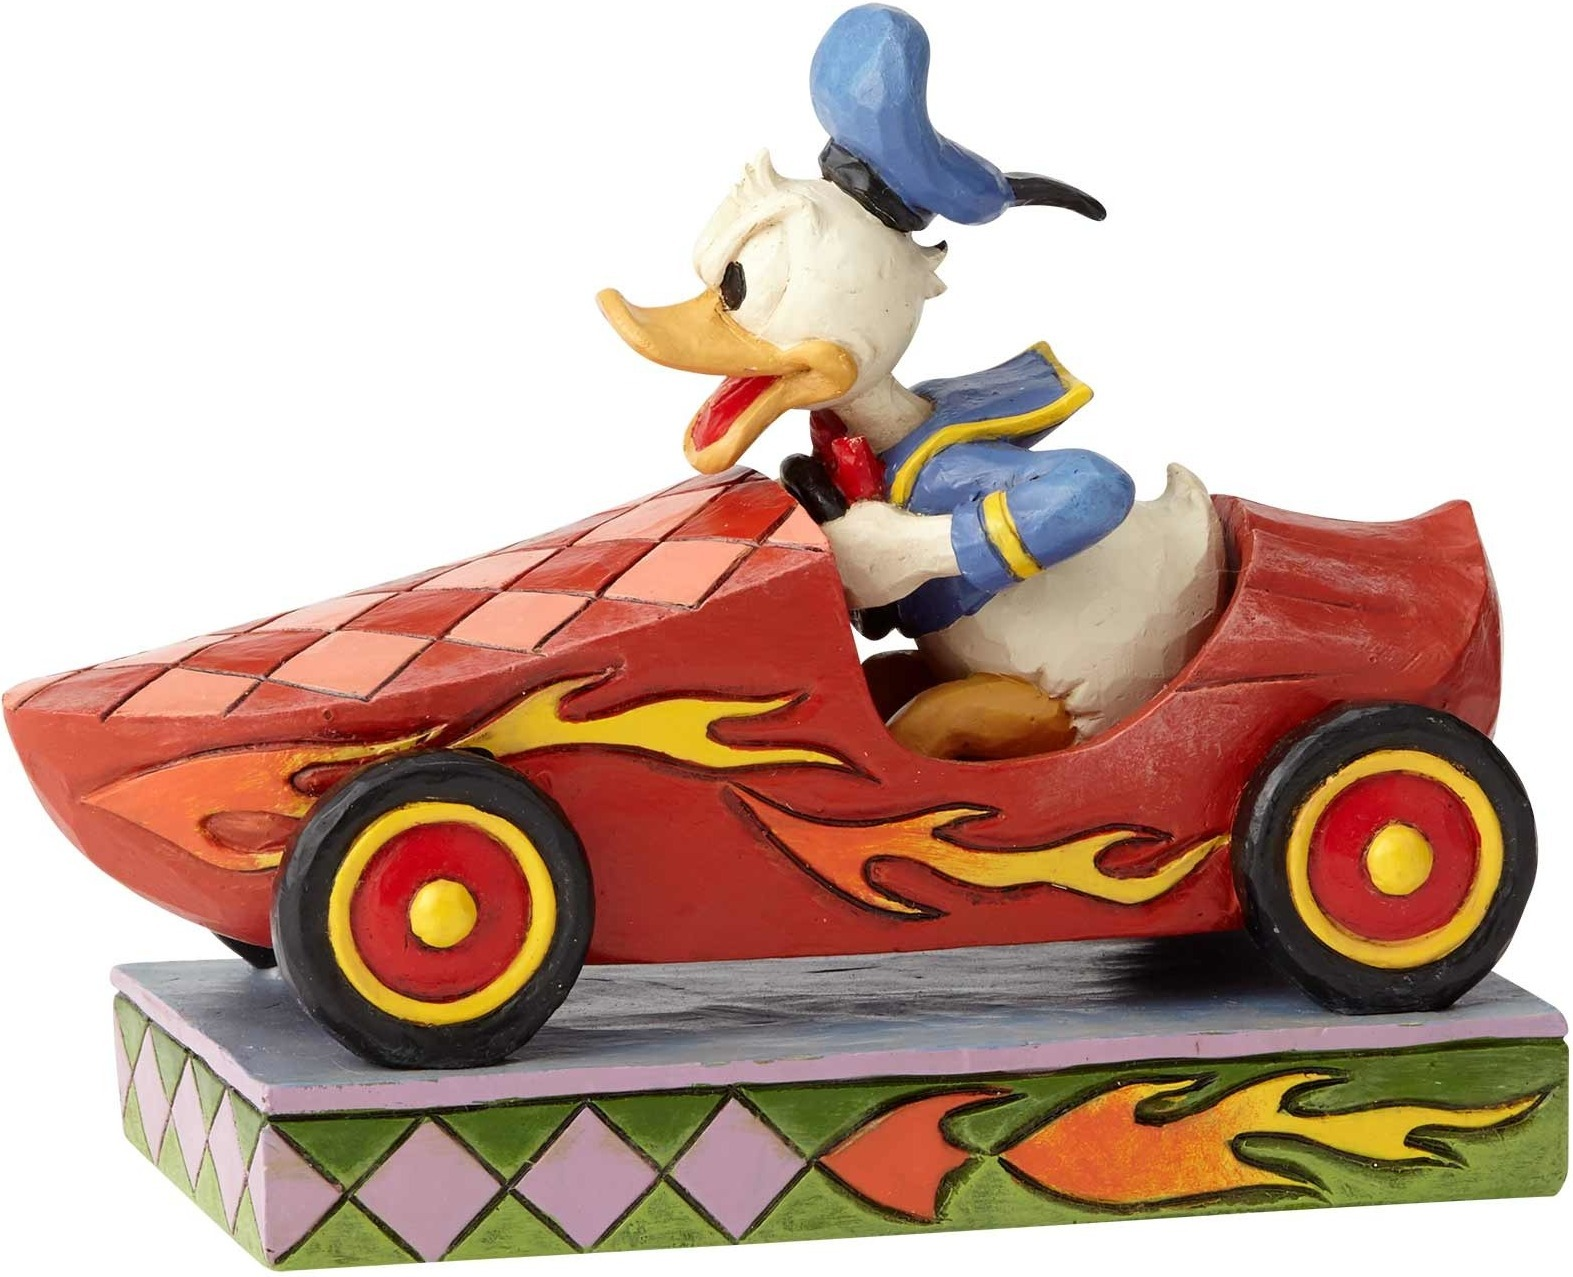 Special Sale 6000975 Disney Traditions 6000975 Soap Box Derby Donald Duck by Jim Shore